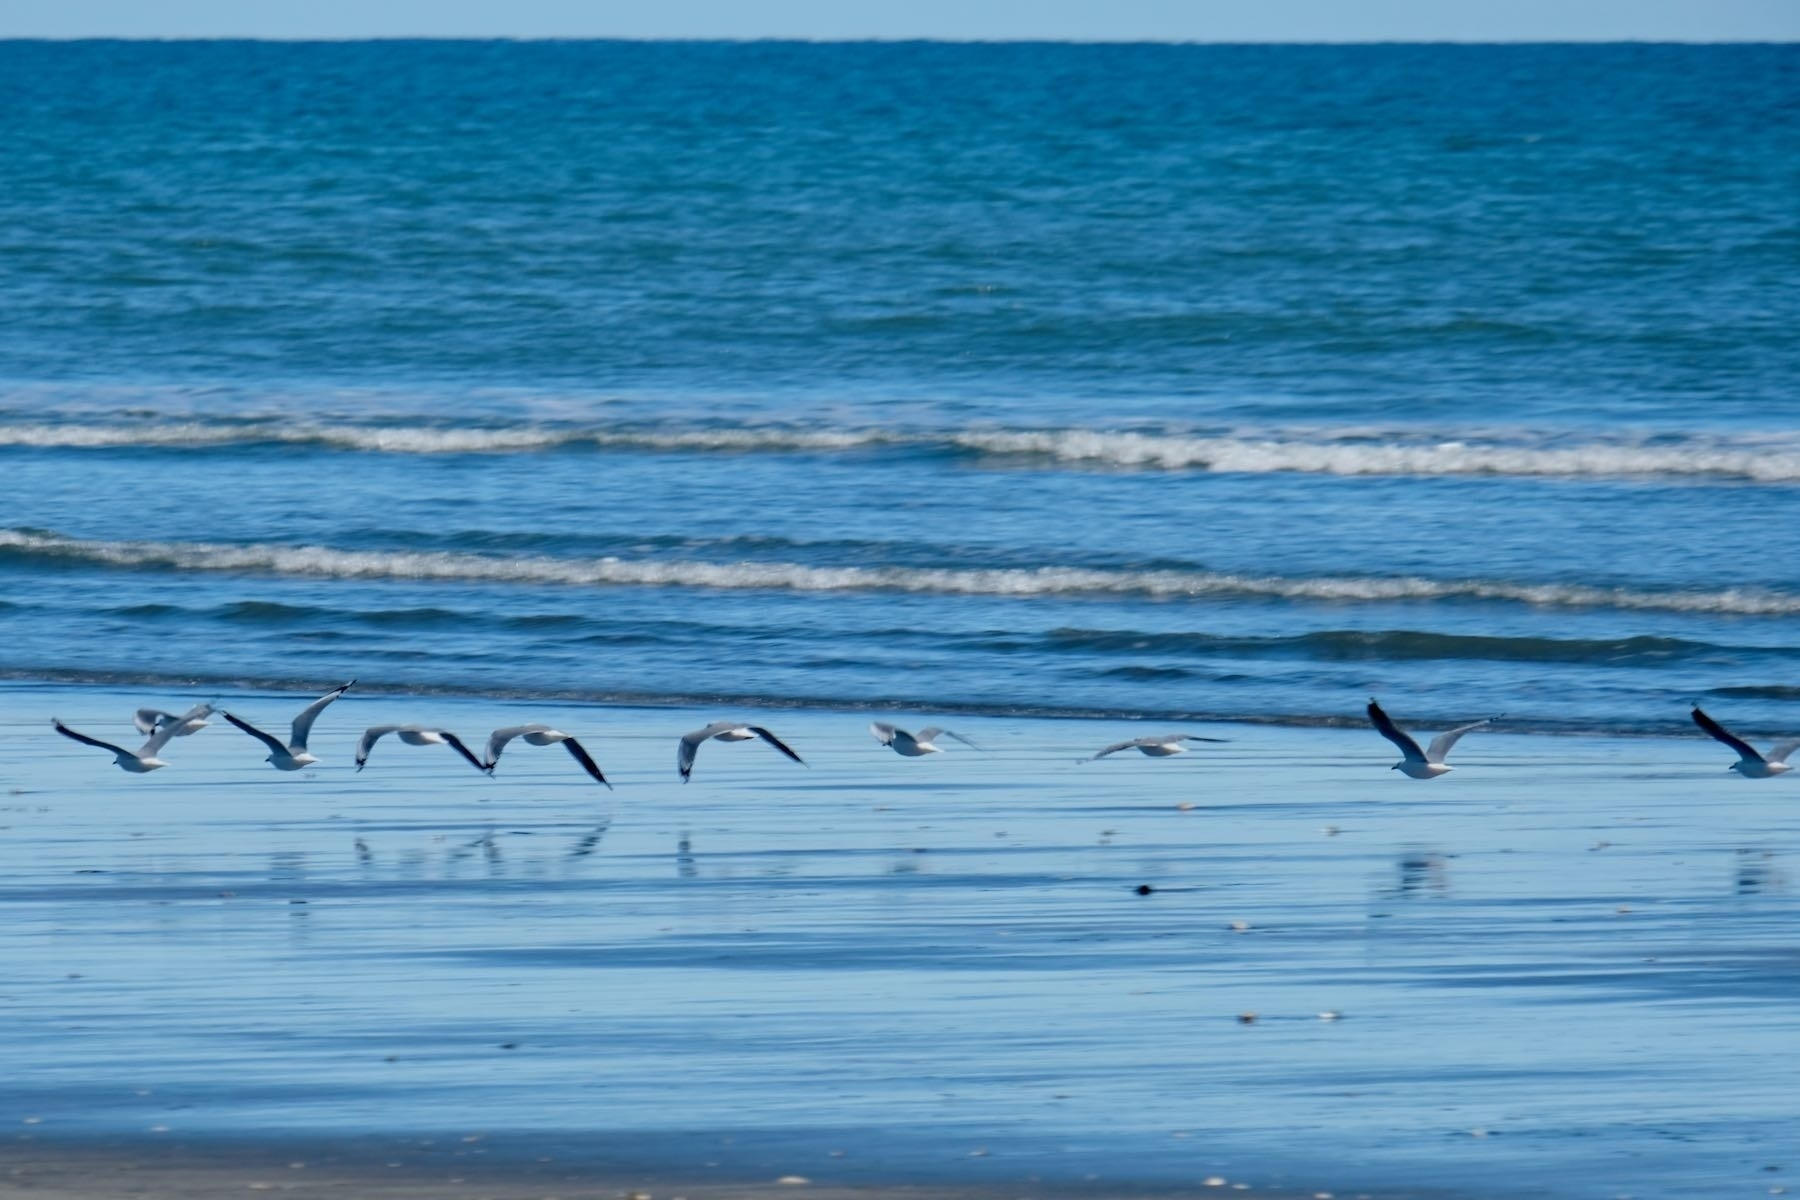 A line of about 12 gulls flying low over wet sand.